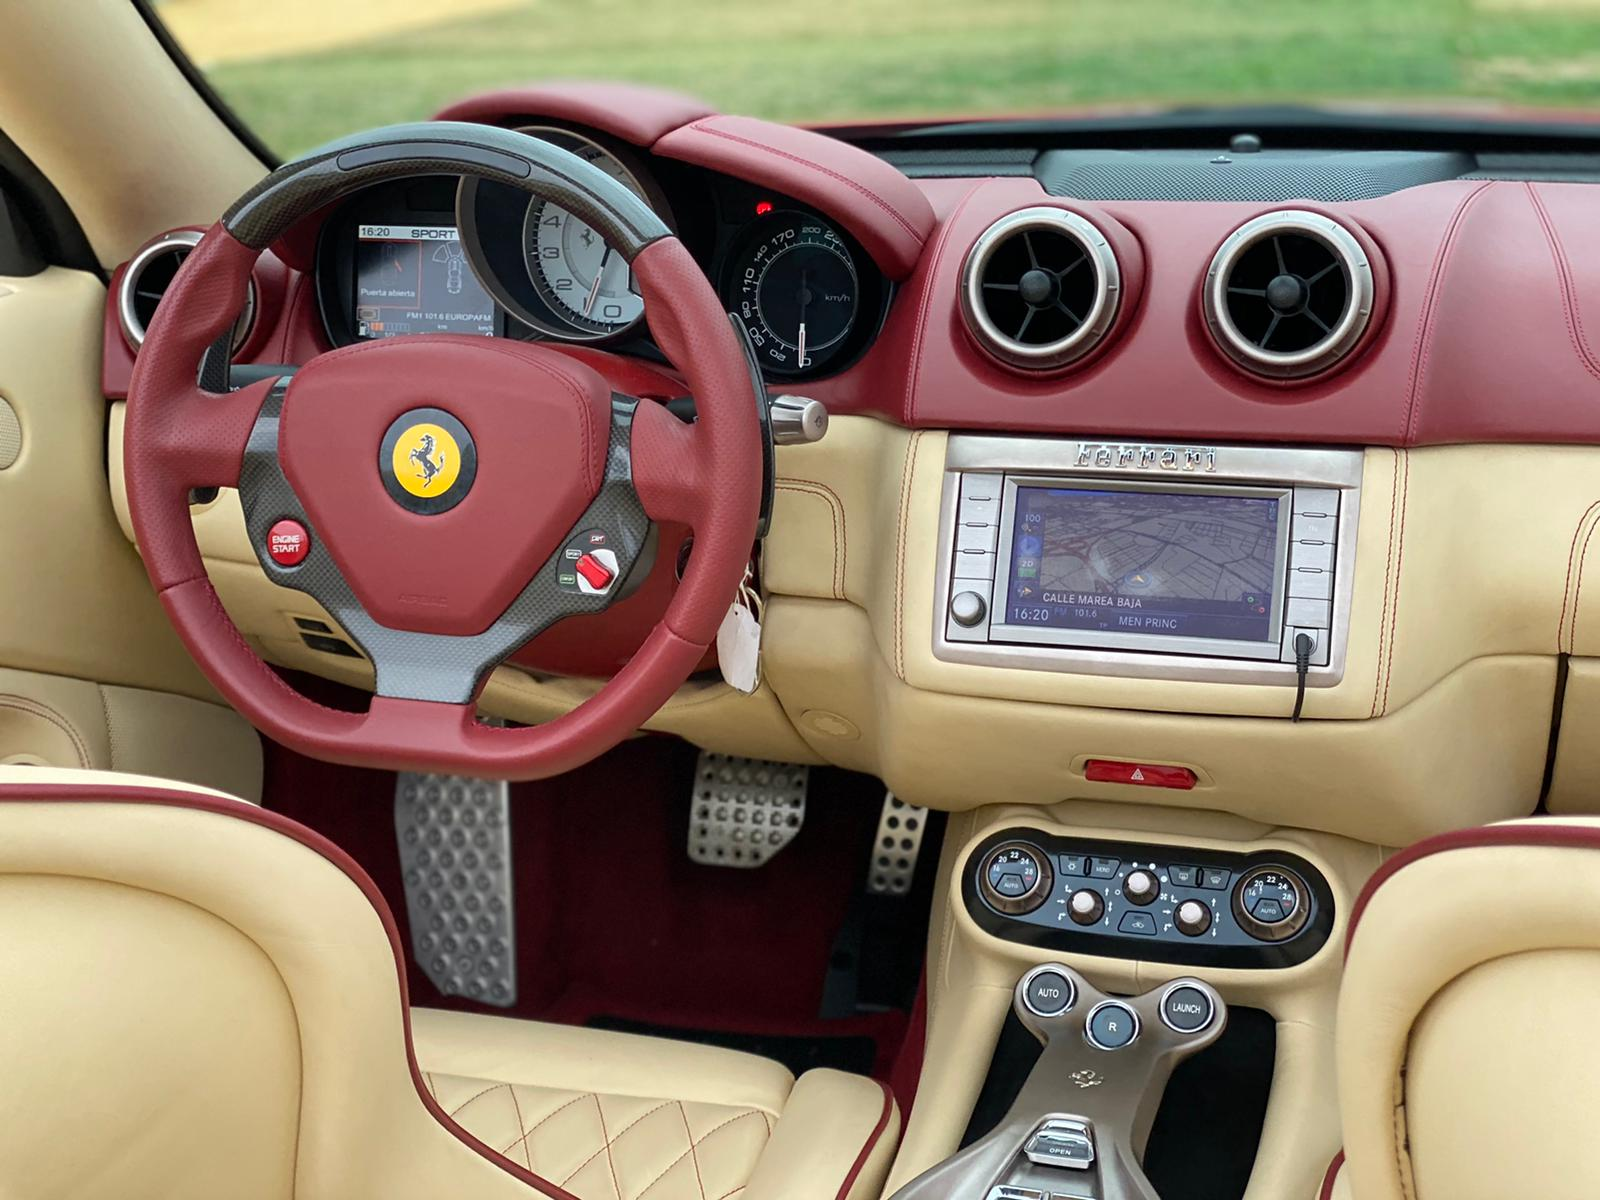 FERRARI CALIFORNIA TAILOR MADE 4 PLAZAS 460 CV 18